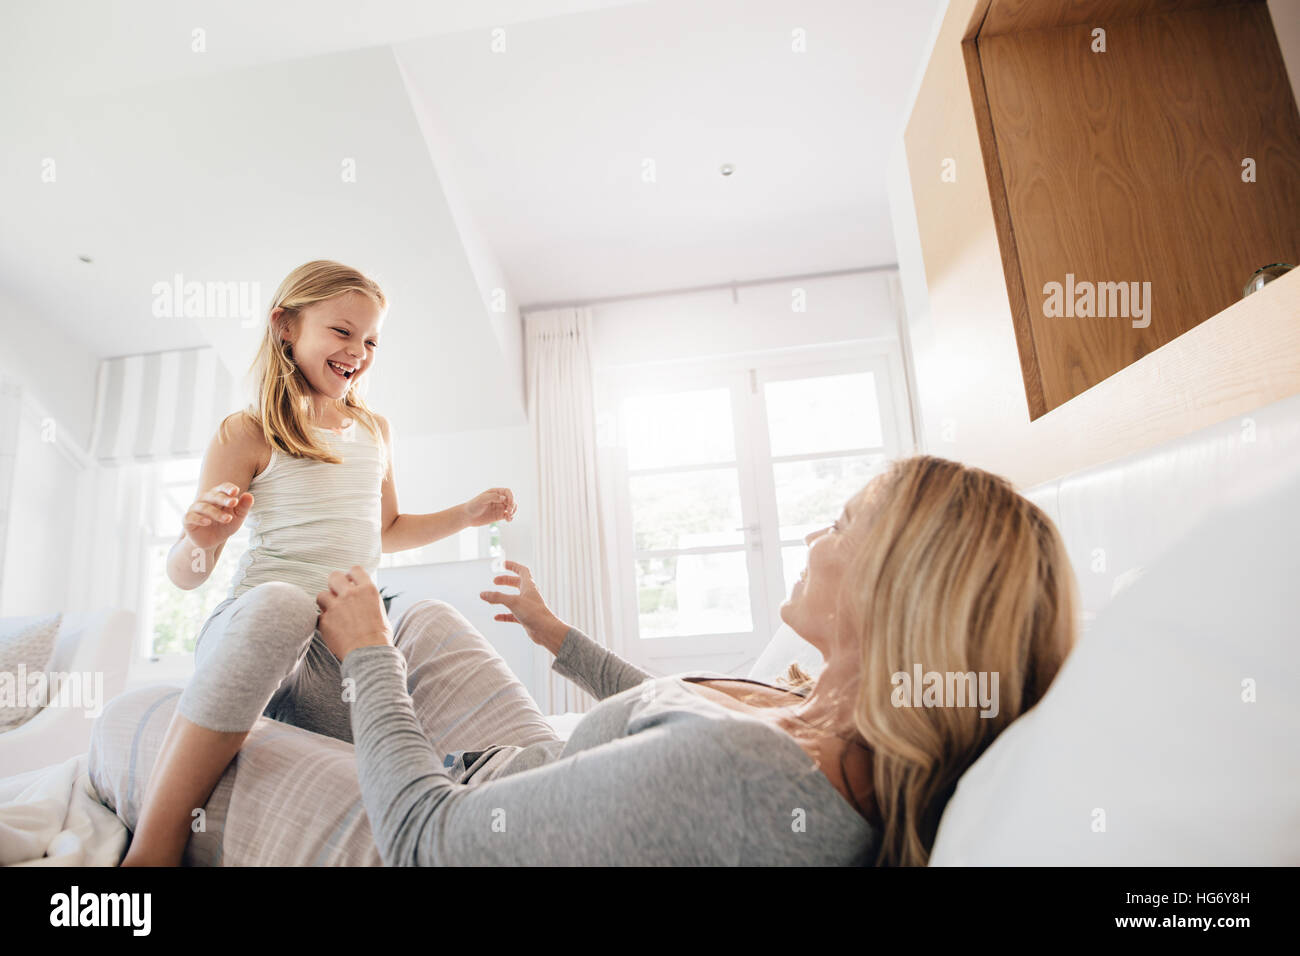 Indoor shot of little girl playing with her mother on bed. Mother and daughter playing in bedroom. - Stock Image